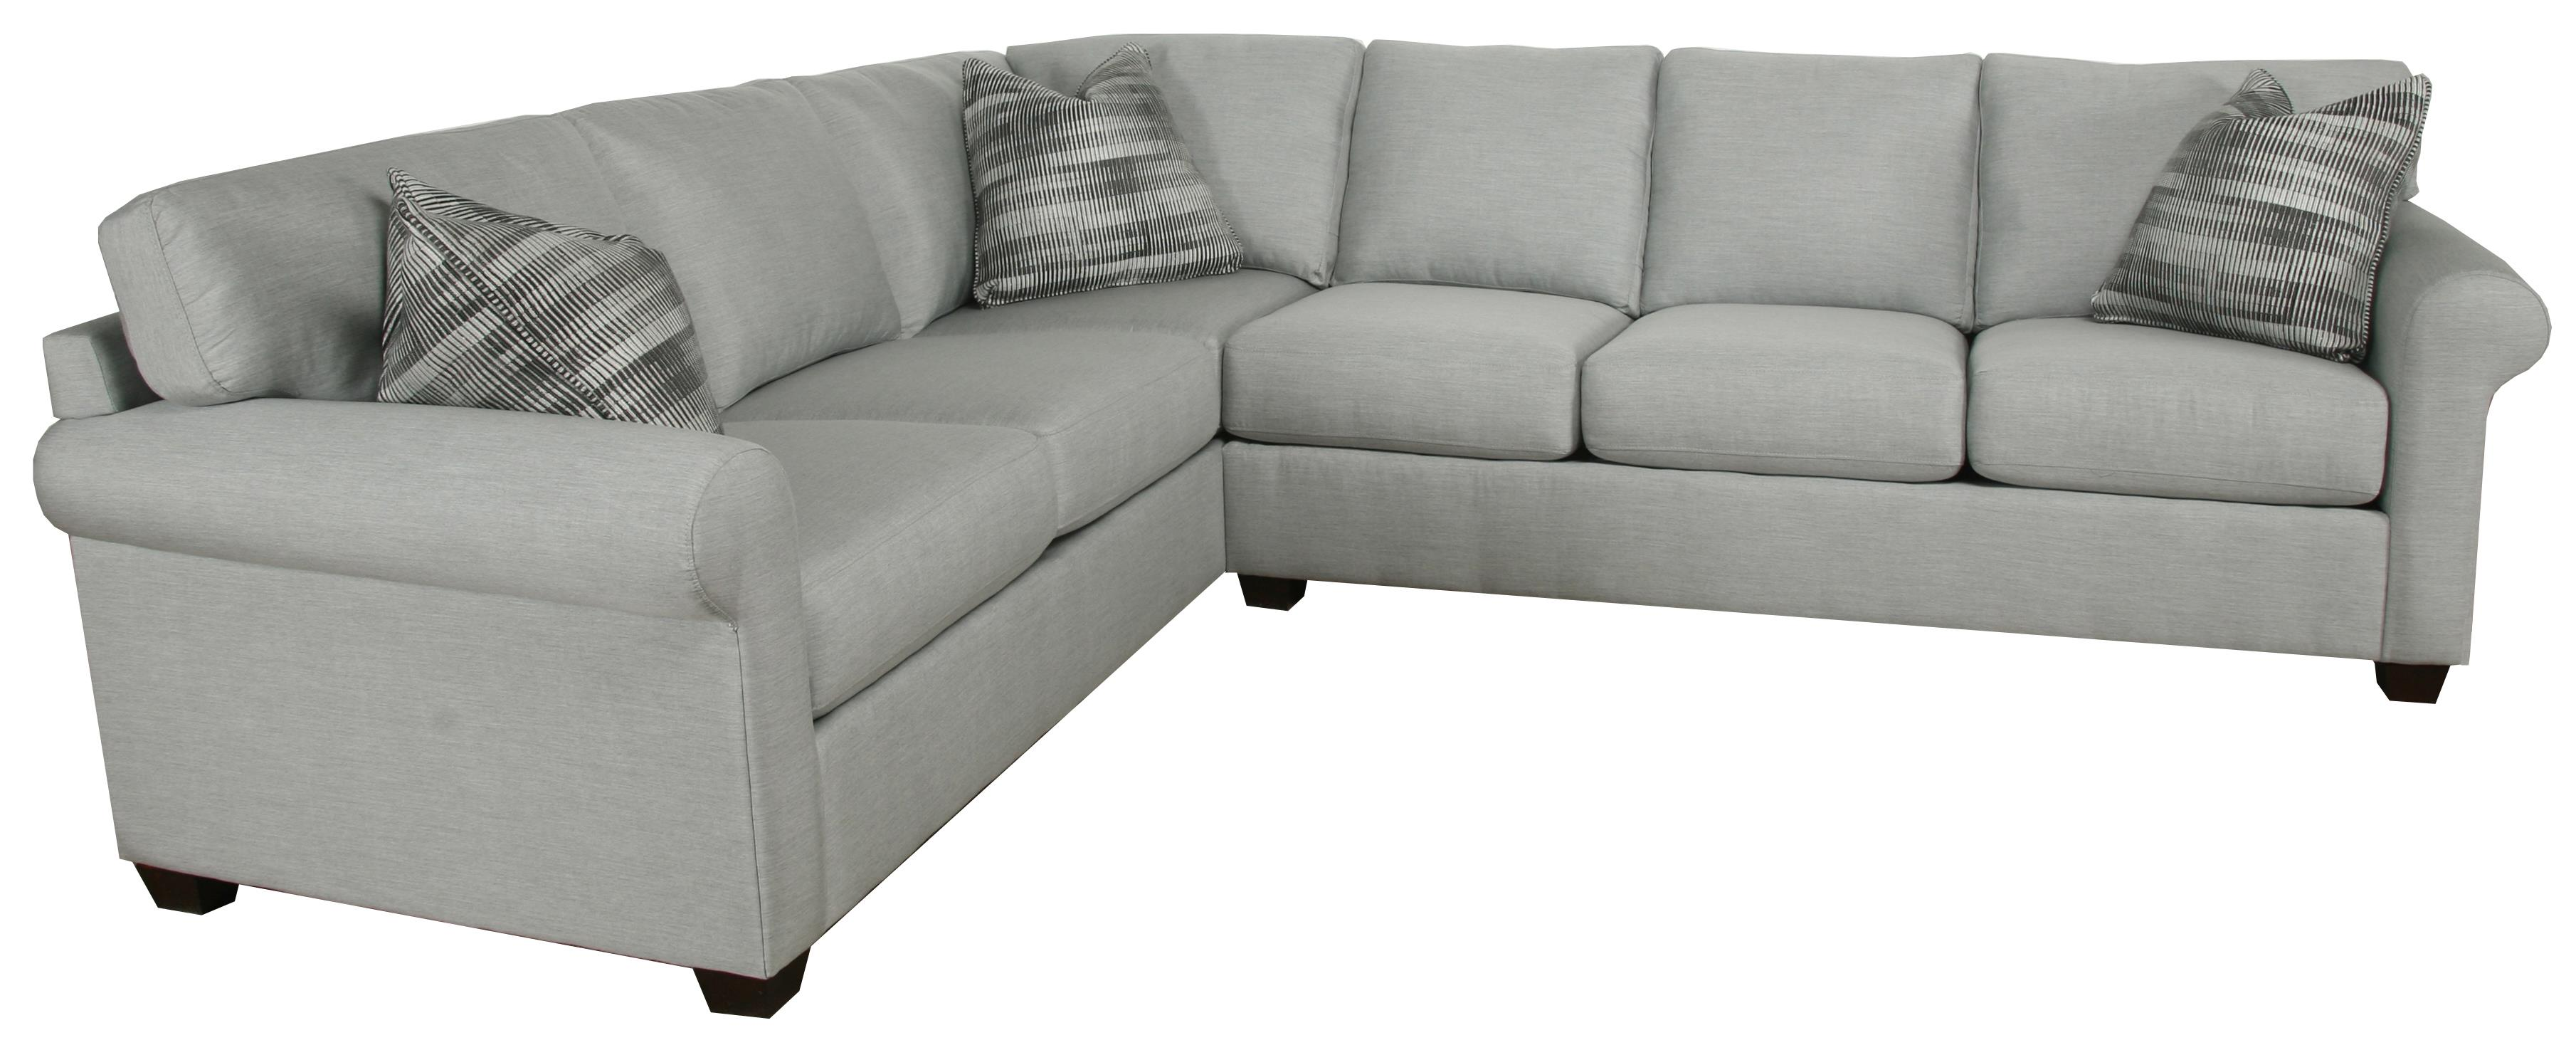 Transitional 2 Piece Sectional by Bauhaus